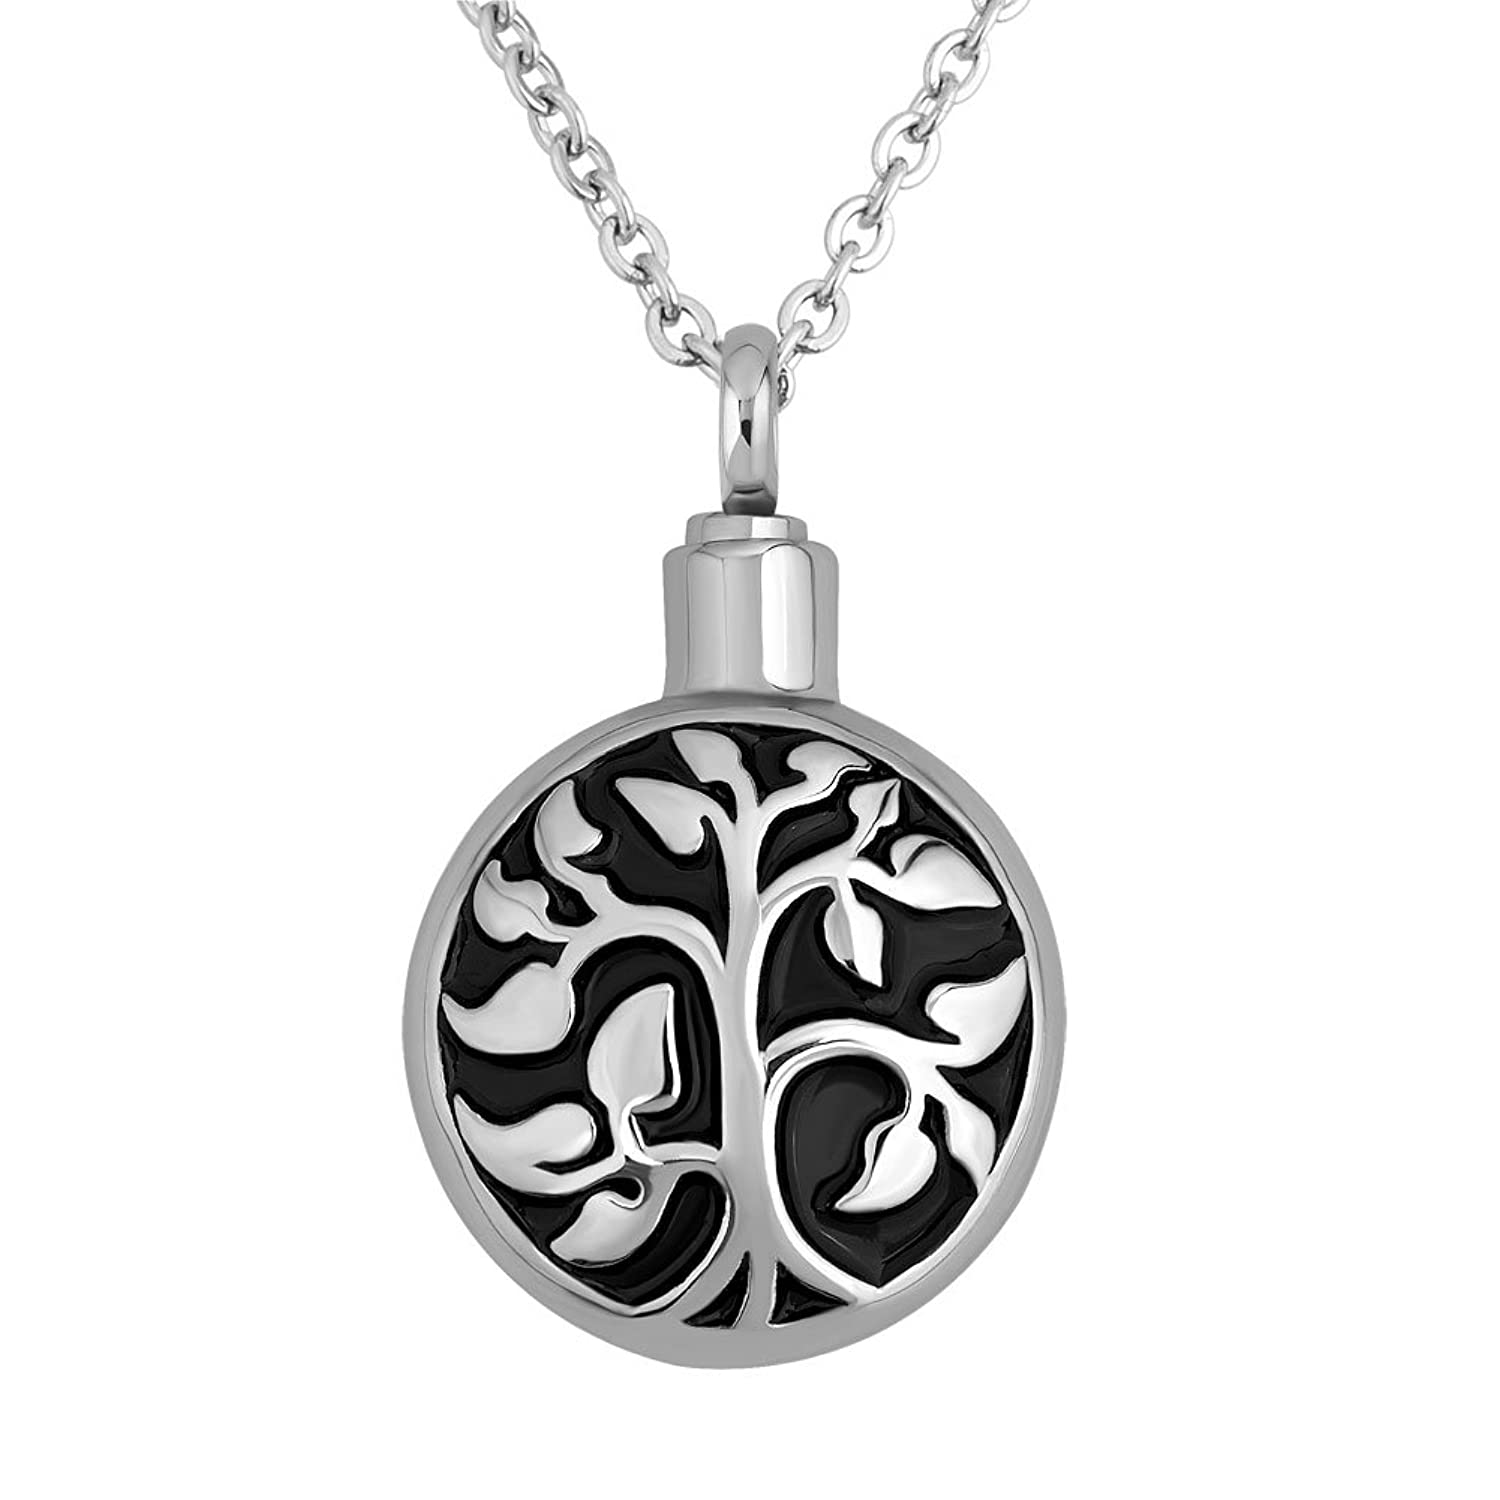 Charmed Craft Tree Of Life Urn Necklaces Human Pet Ashes Cremation Memory Stainless Steel 18'' Chain